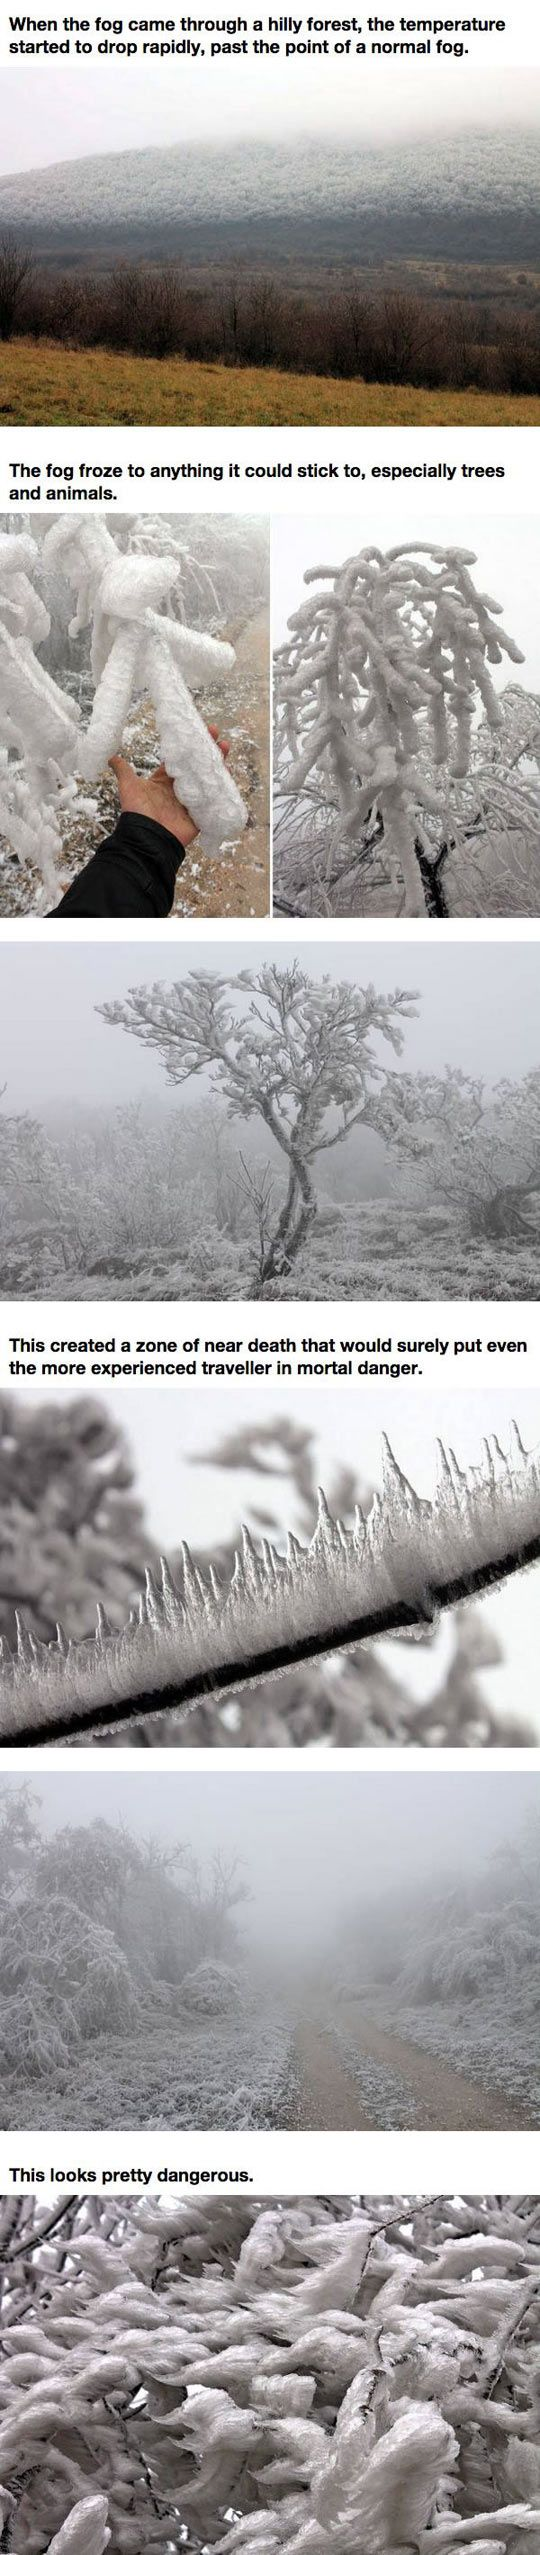 """The Deadly Fog - I don't know how deadly it may be, but it's also known as hoarfrost. I've never seen it this profoundly thick before. Usually, it's delicate crystals in long branches everywhere. This is a form I've not seen before, which makes it all the more interesting."" - Ooooh..."